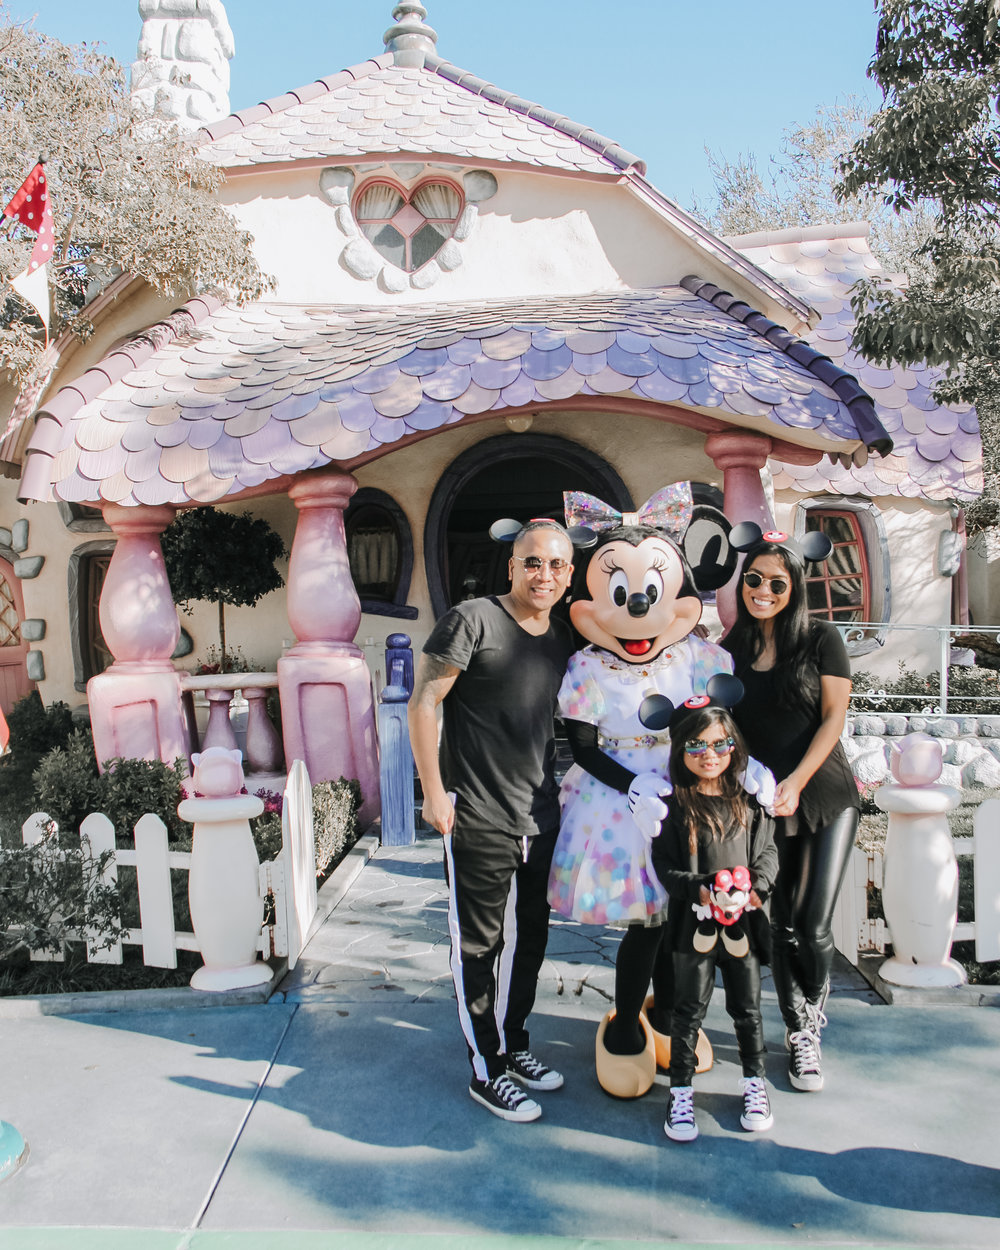 With our new gal pal, Minnie Mouse!